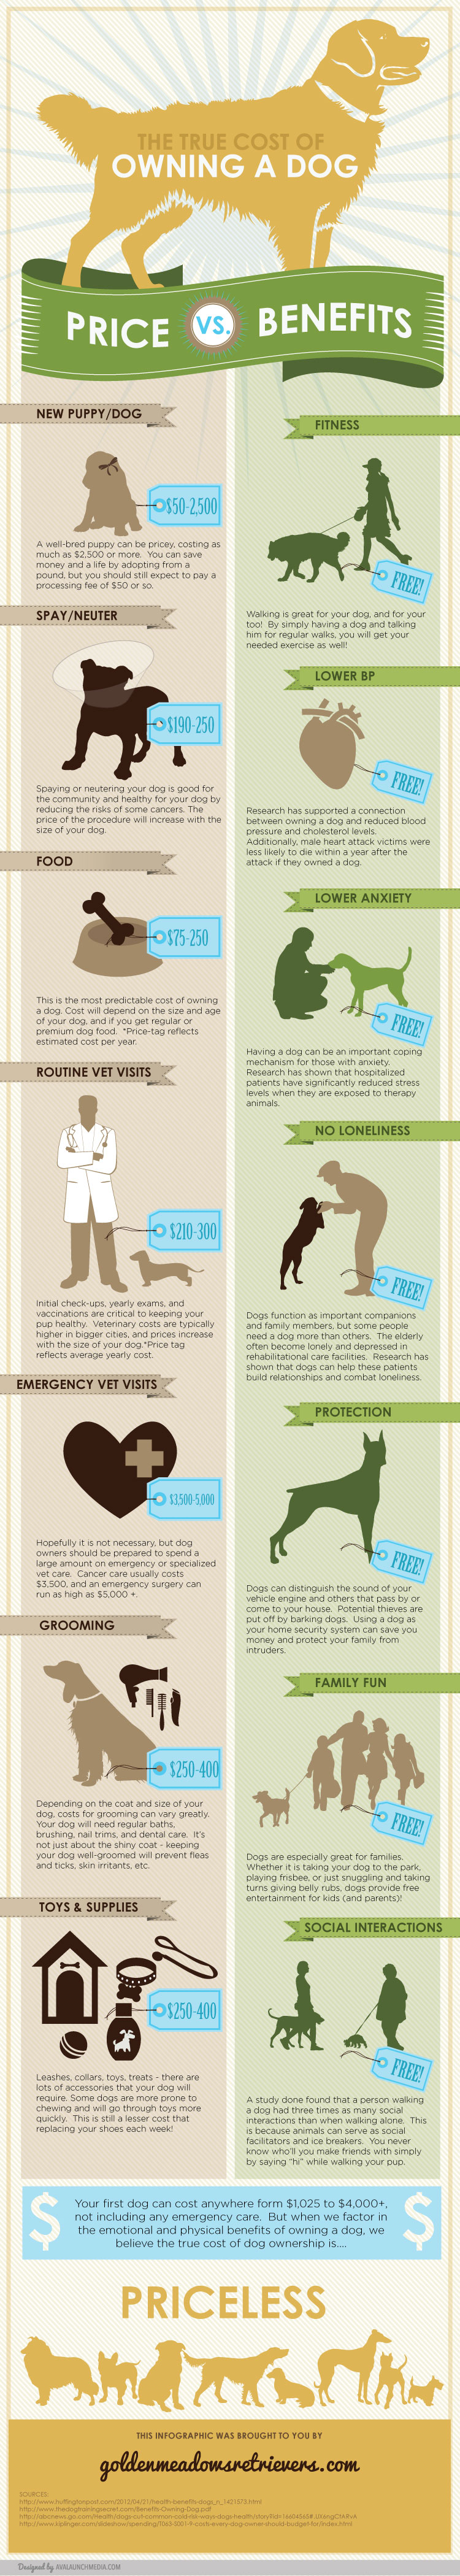 cost-of-owning-a-dog-price-vs-benefits